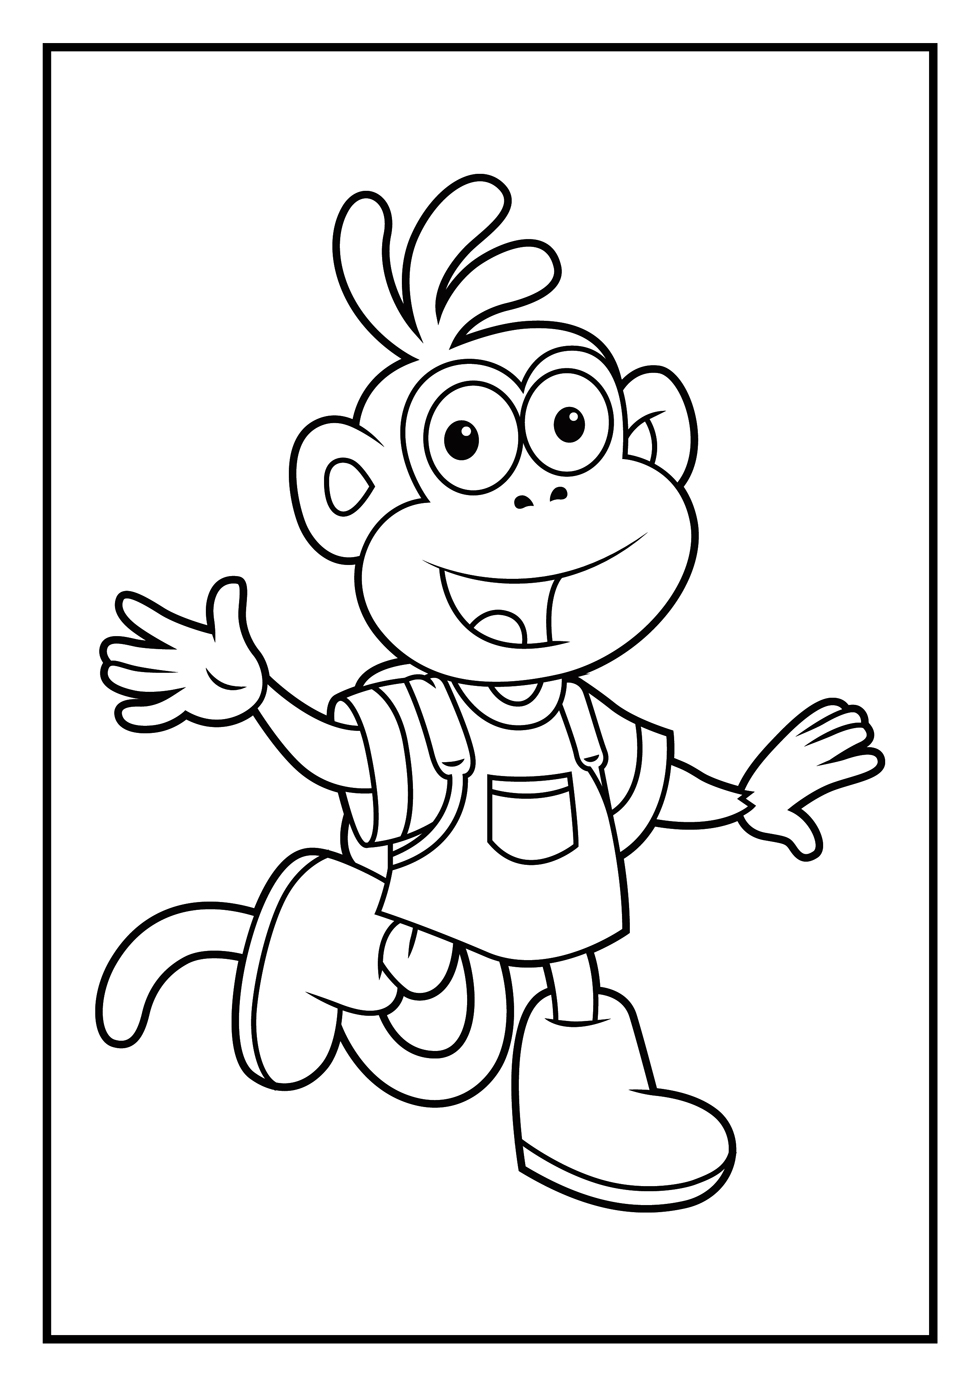 Free Printable Diego Coloring Pages For Kids | 1386x980